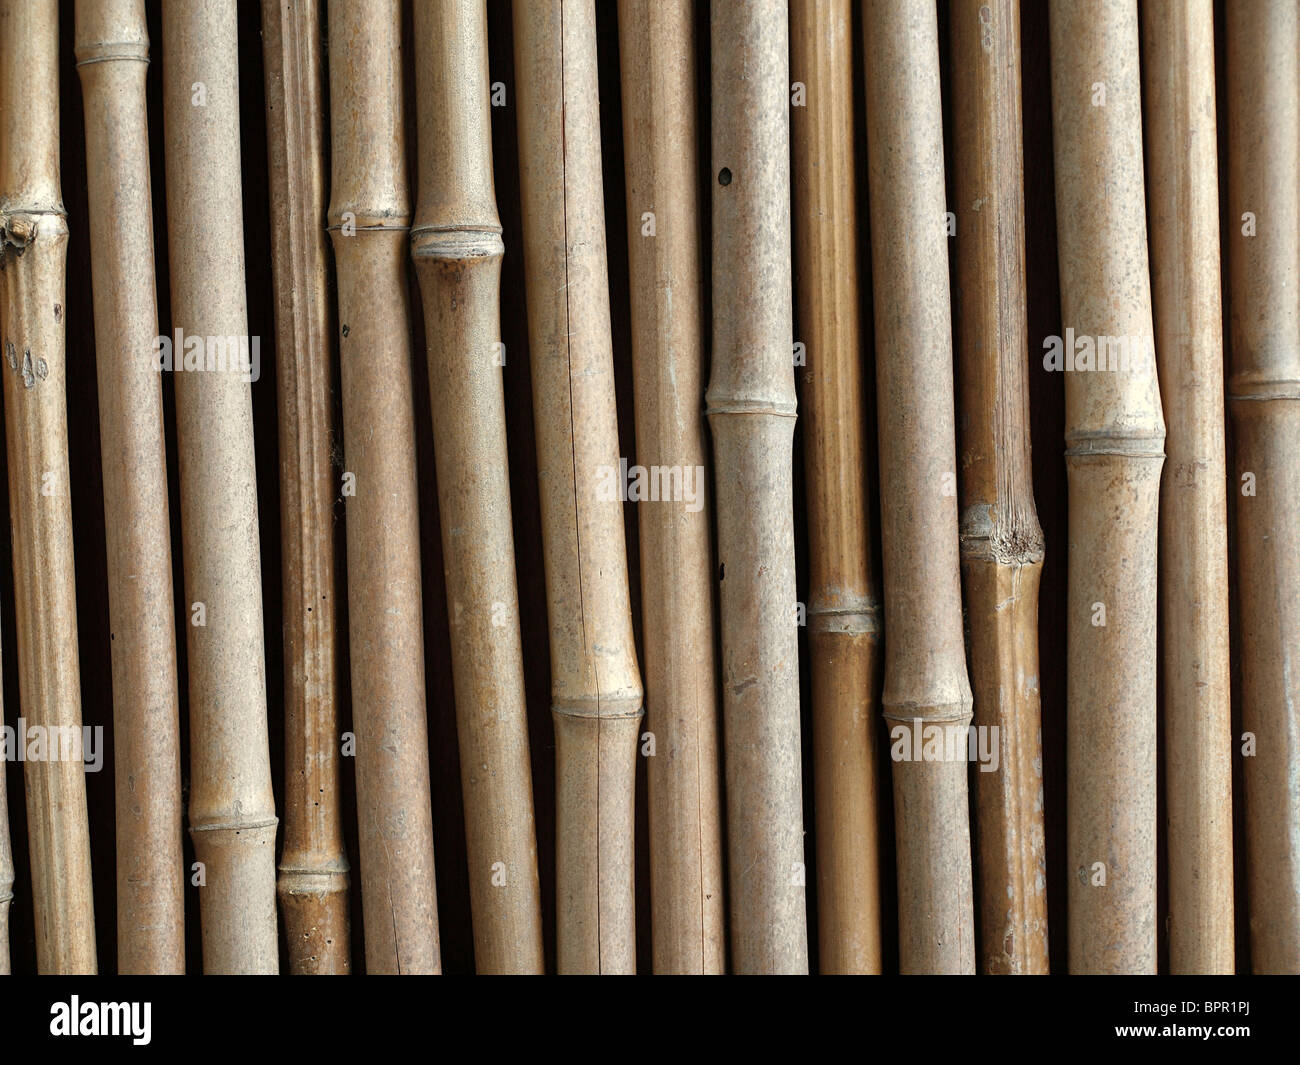 Bamboo Fence Canada Fence Poles Stock Photos Fence Poles Stock Images Alamy